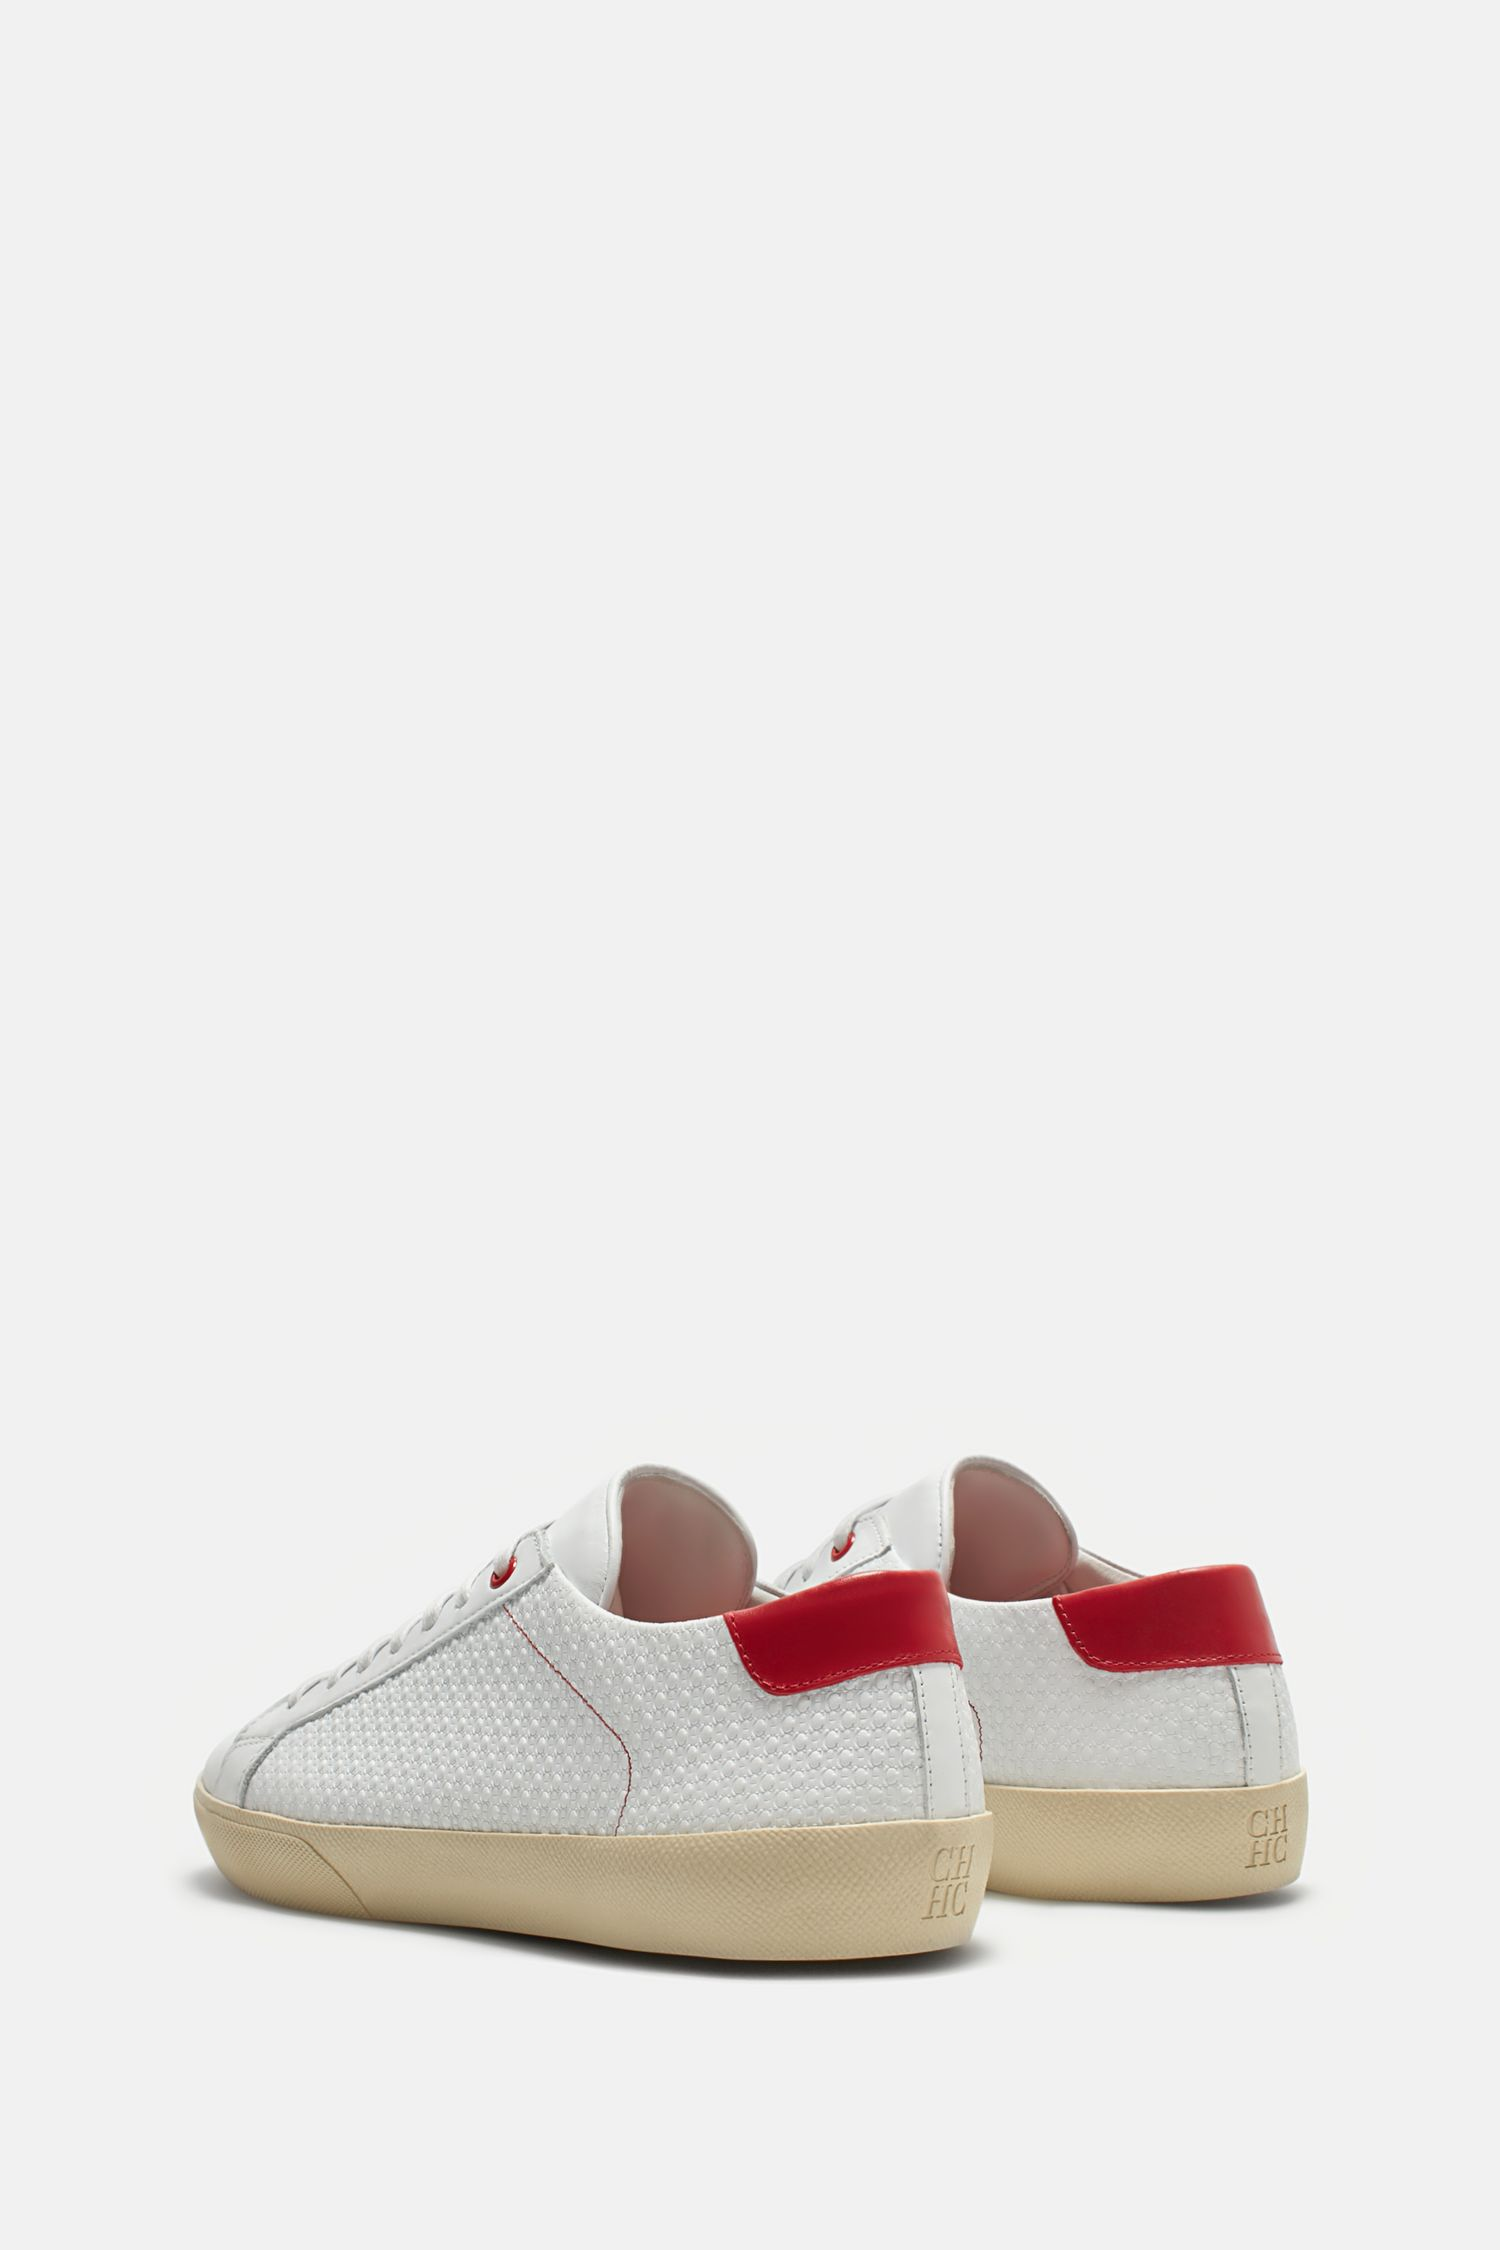 CH embossed leather sneakers